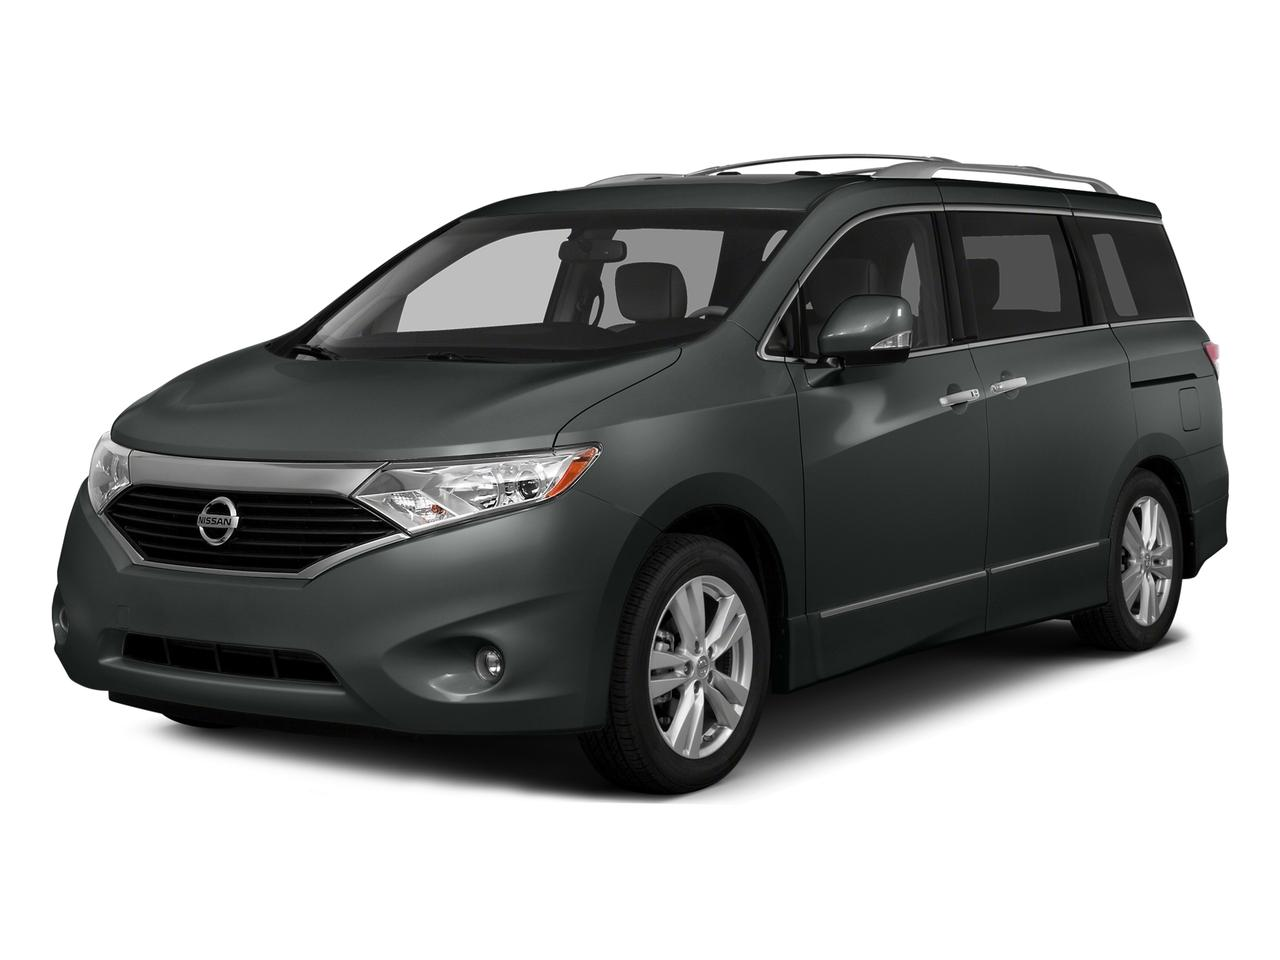 2015 Nissan Quest Vehicle Photo in Lewisville, TX 75067